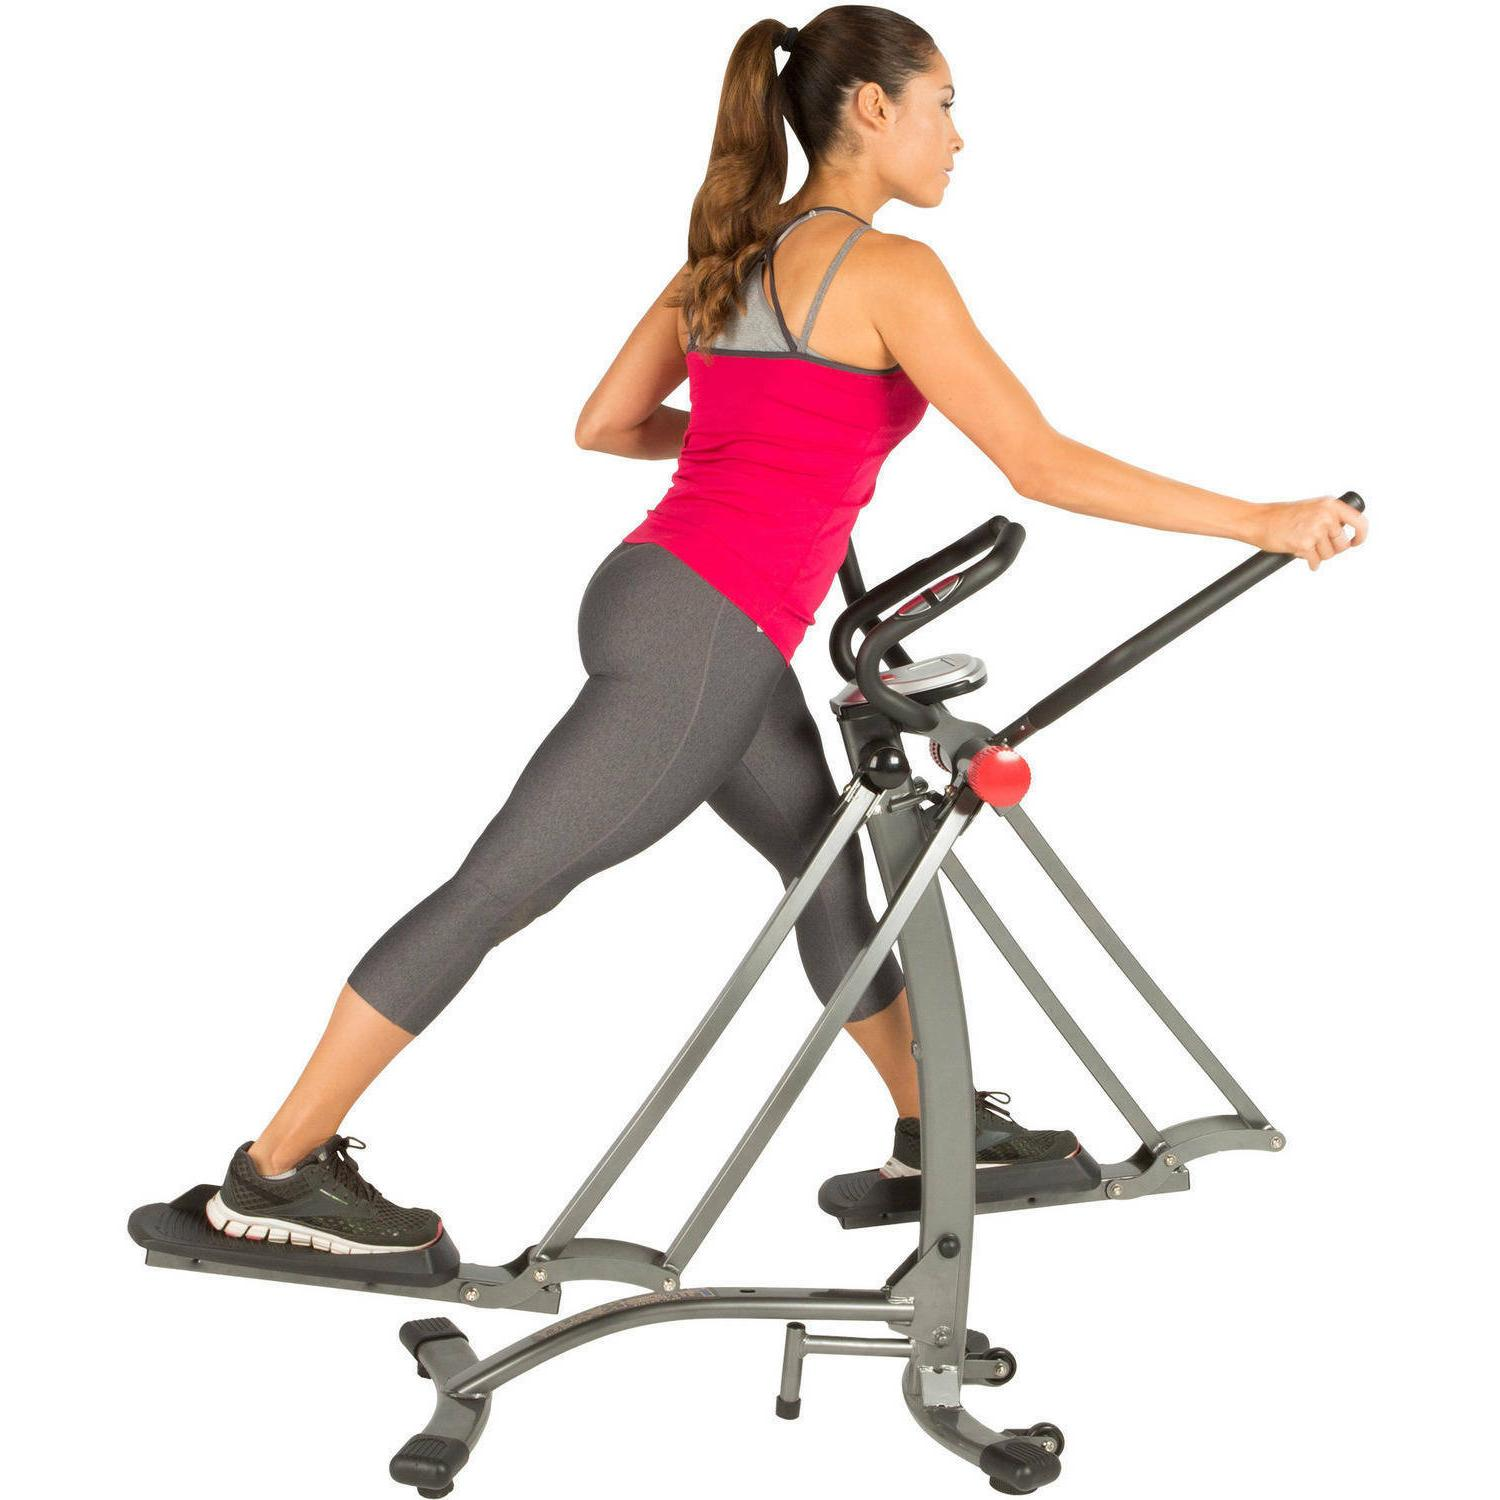 Air Exercise Trainer Elliptical Bike Fitness Machine Home Wo